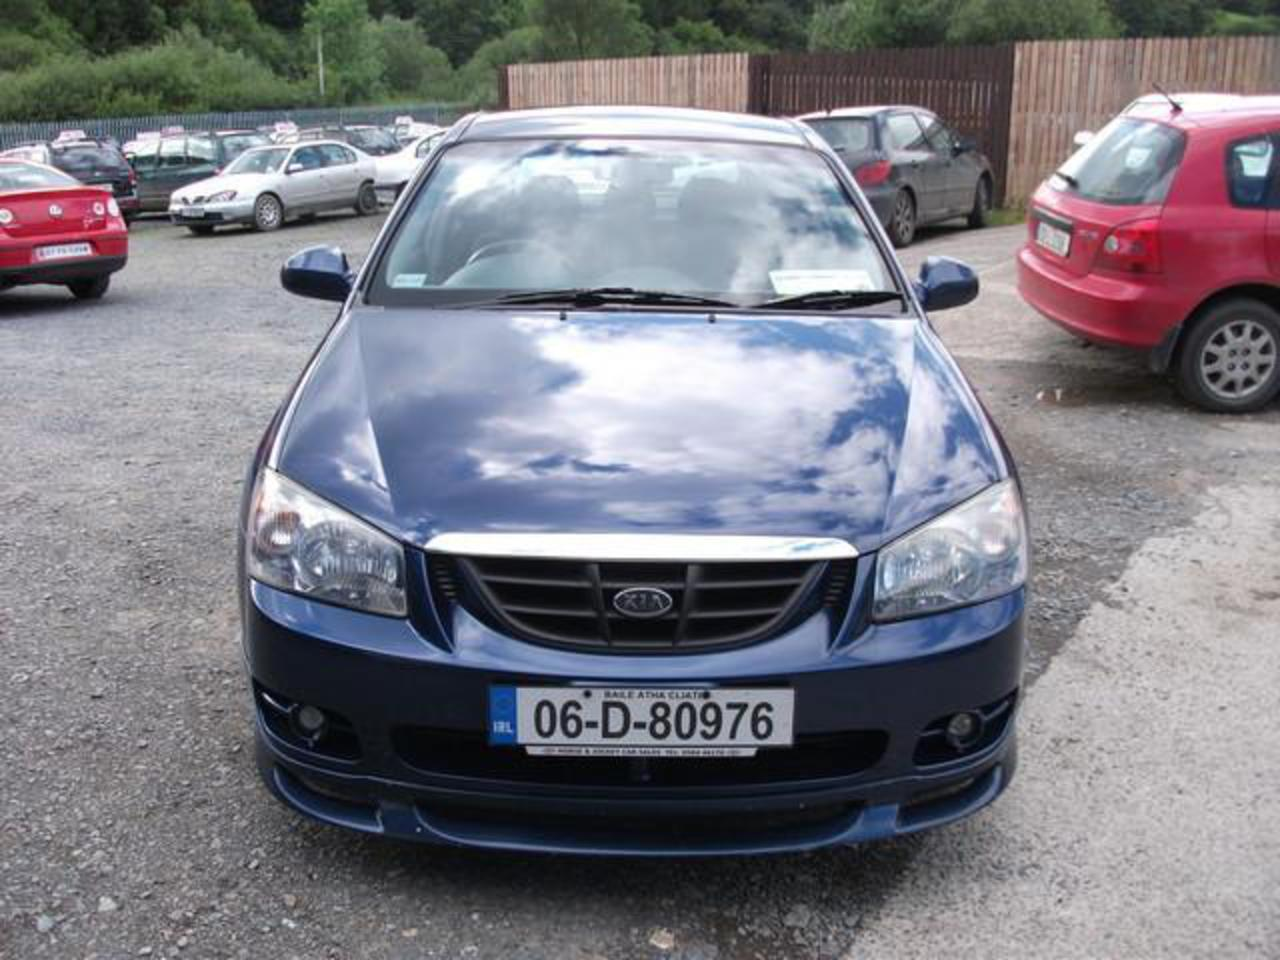 2006 Kia Cerato 1.6 LX 5DR, Price: €4,500 1.6 Petrol for sale in ...